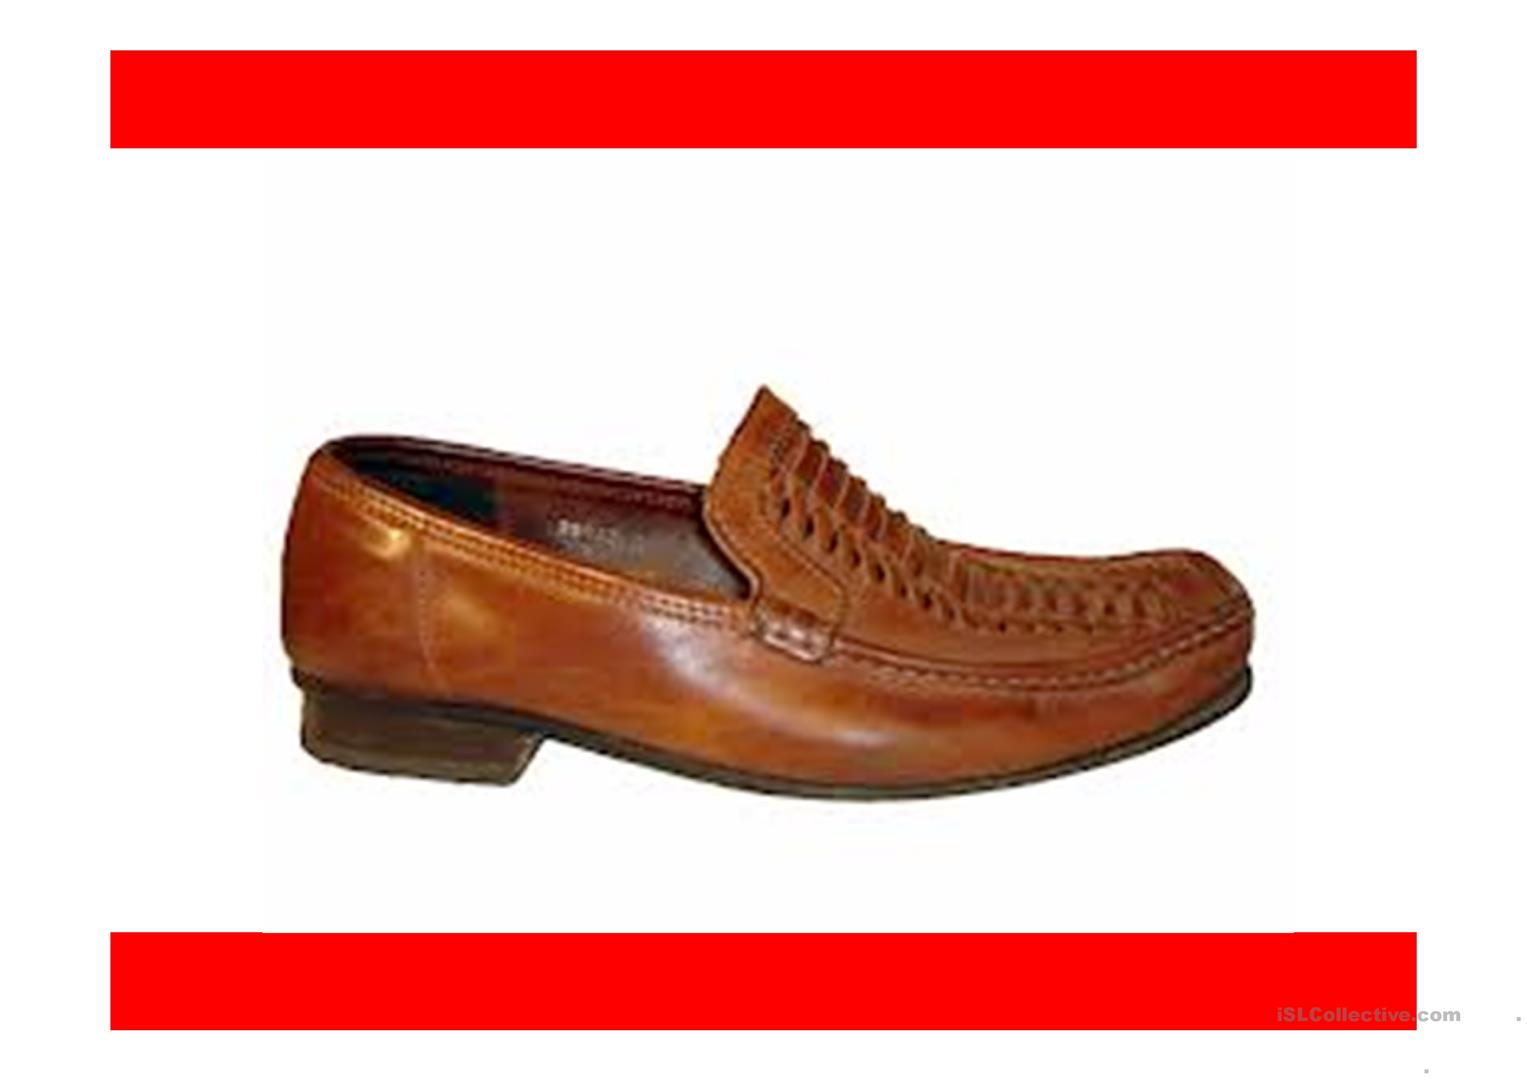 Shoes Shoes Everywhere Ppt Worksheet